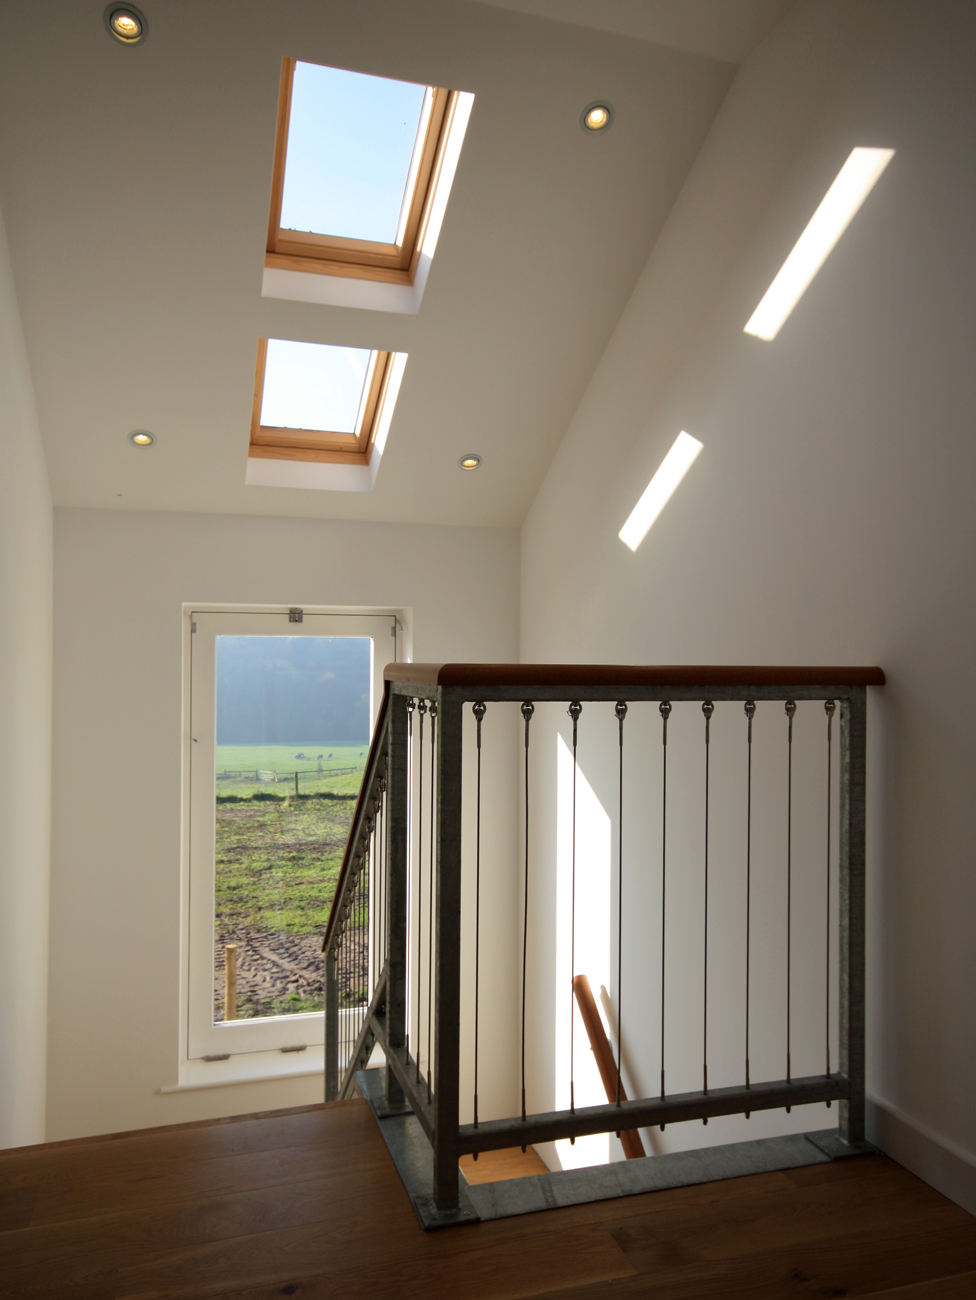 This landing benefits from additional natural light through two roof windows, while the picture-window draws your attention to the countryside view.